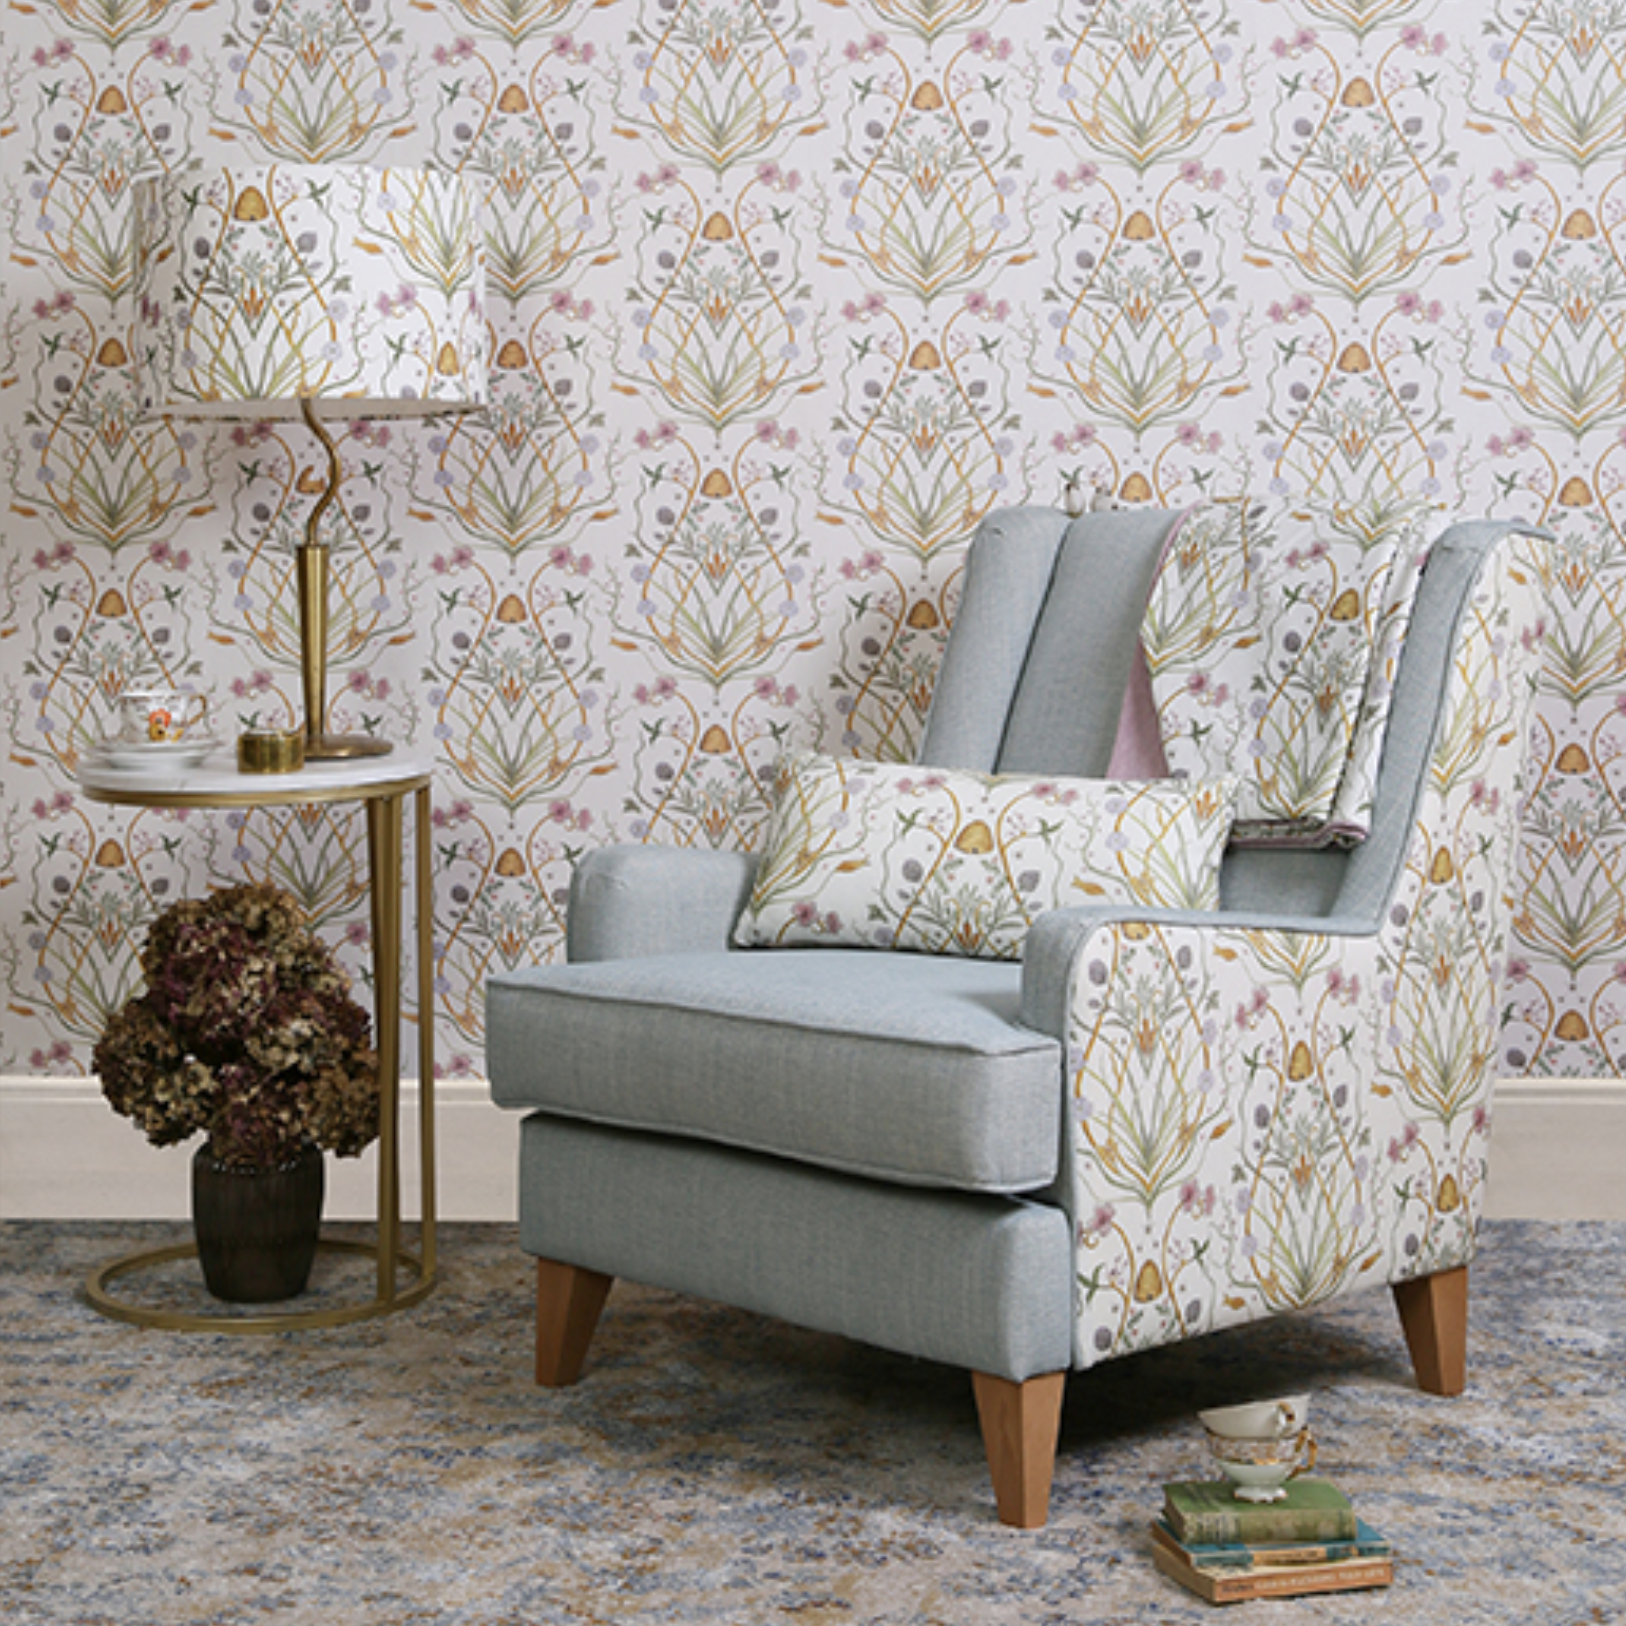 The Chateau By Angel Strawbridge Fabric Supplier Northumberland